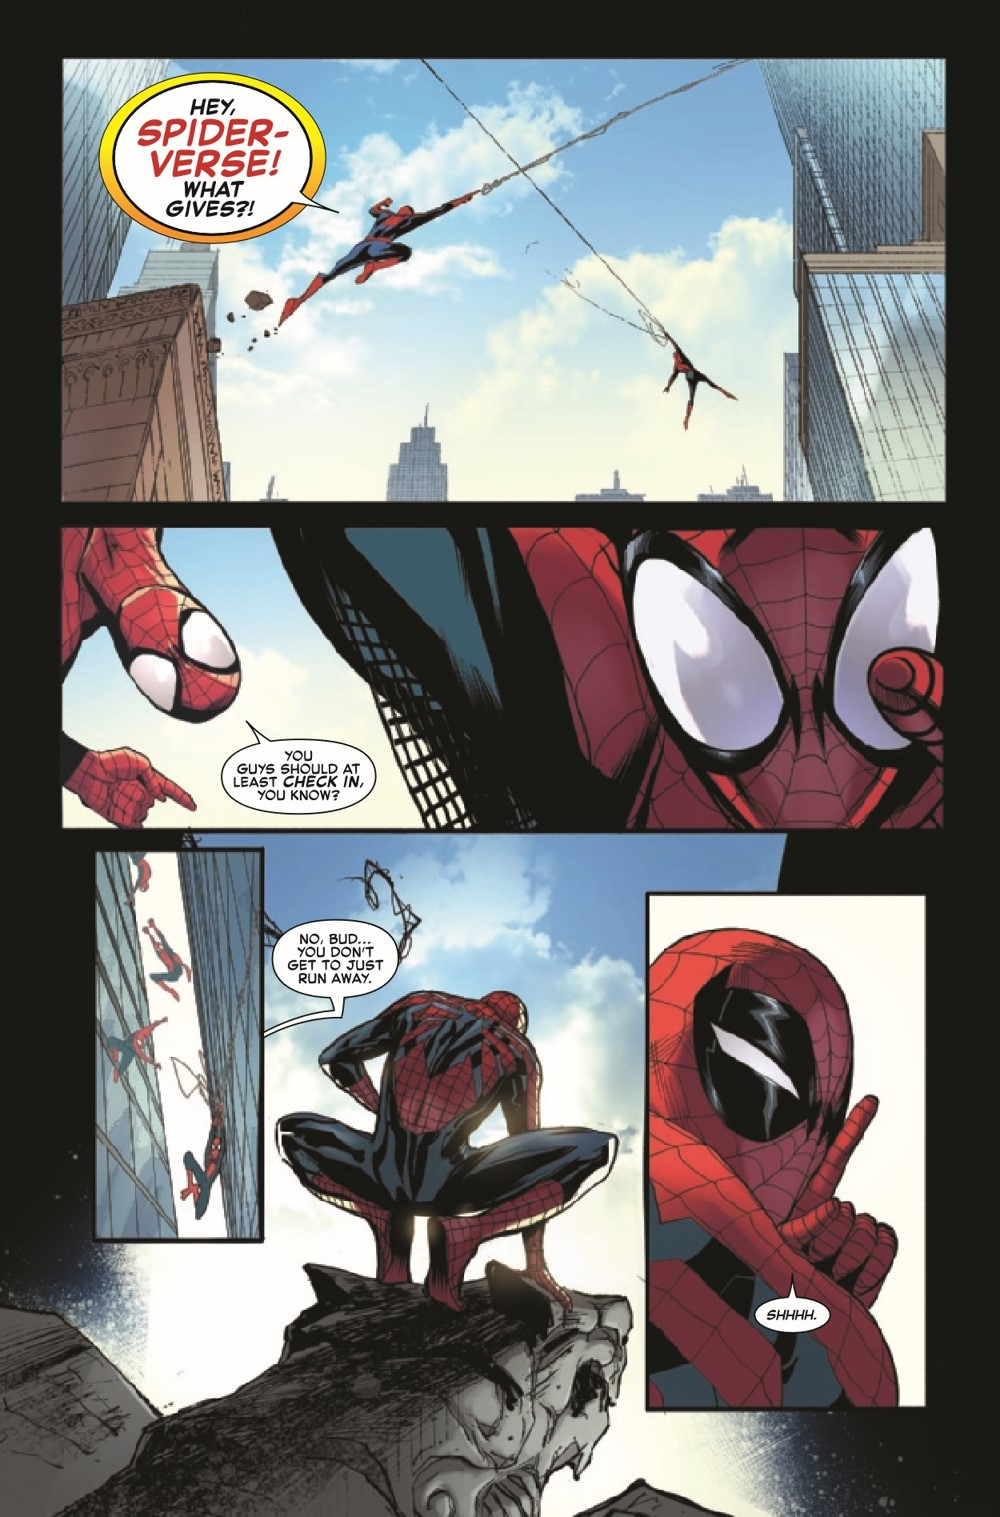 ASM2018075_Preview-9 ComicList Previews: AMAZING SPIDER-MAN #75